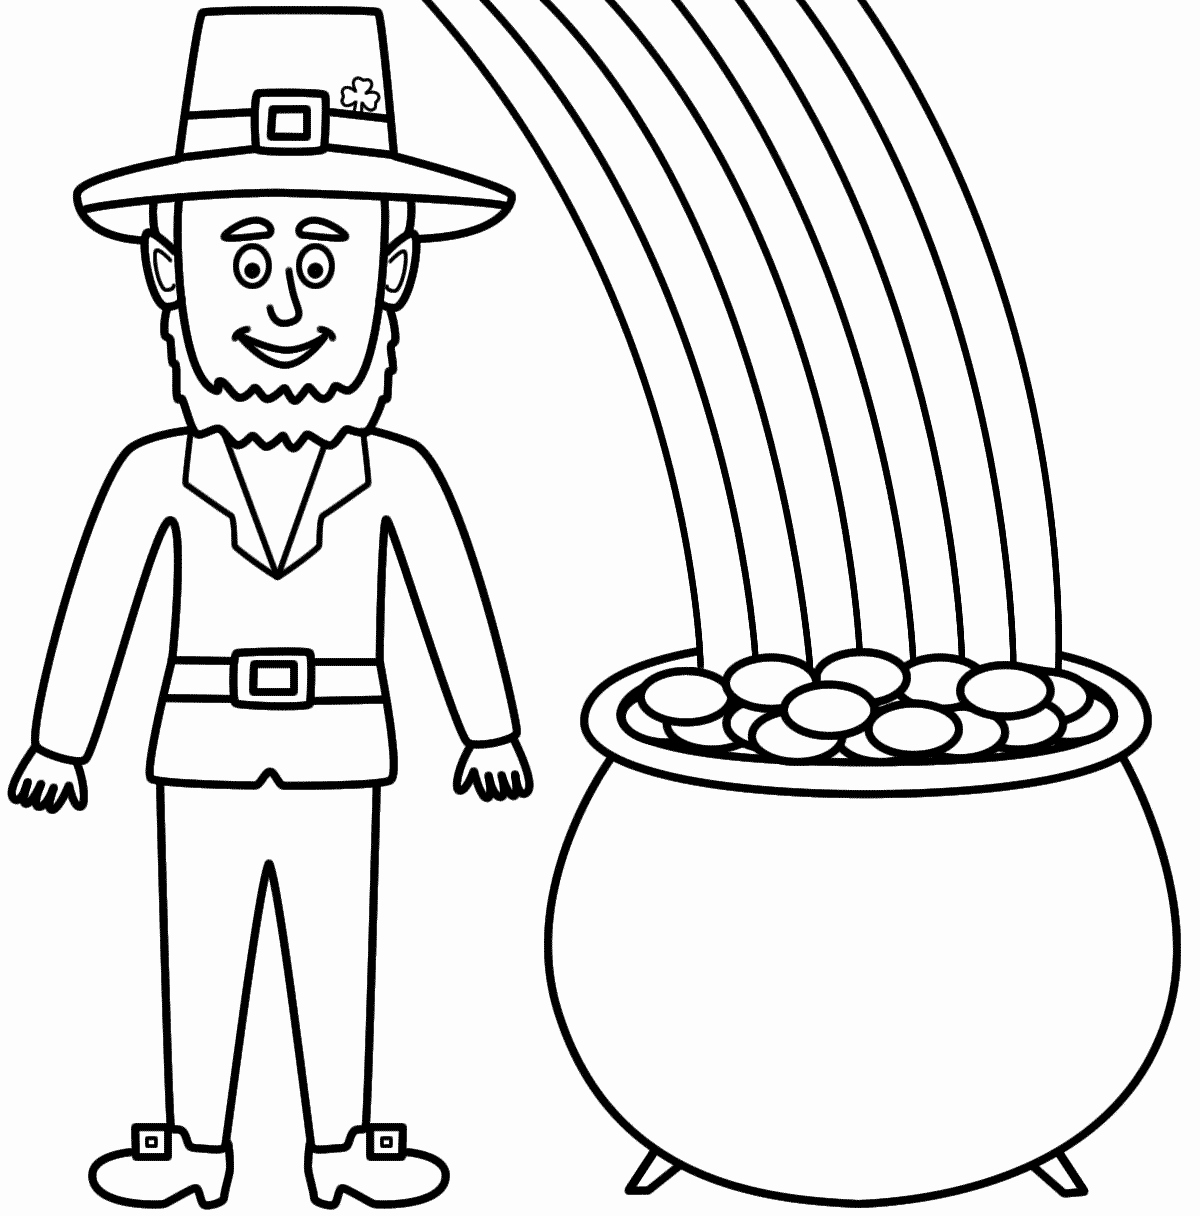 1200x1216 Free Printable Pot Of Gold Coloring Pages Stock Coloring Pot Gold